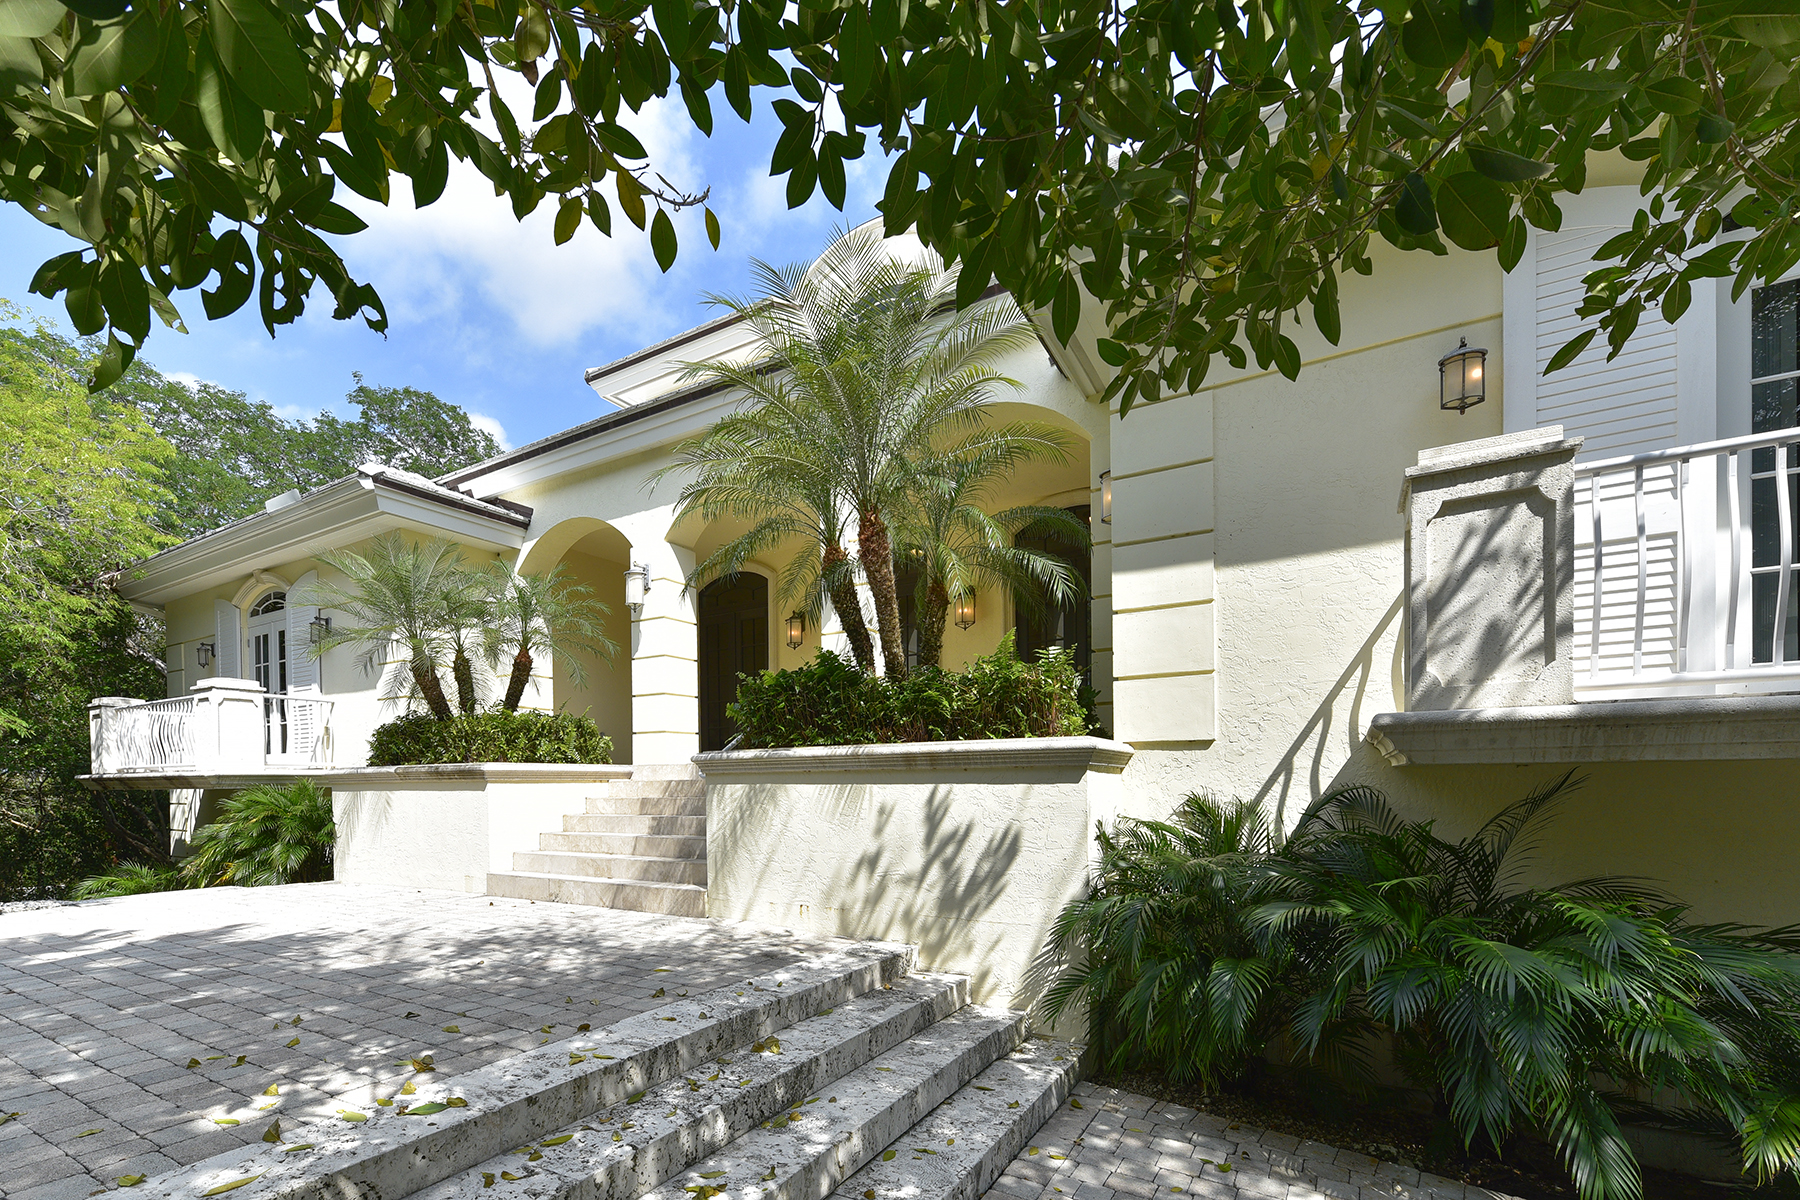 Villa per Vendita alle ore Custom Built Waterfront Home at Ocean Reef 16 North Bridge Lane Ocean Reef Community, Key Largo, Florida, 33037 Stati Uniti